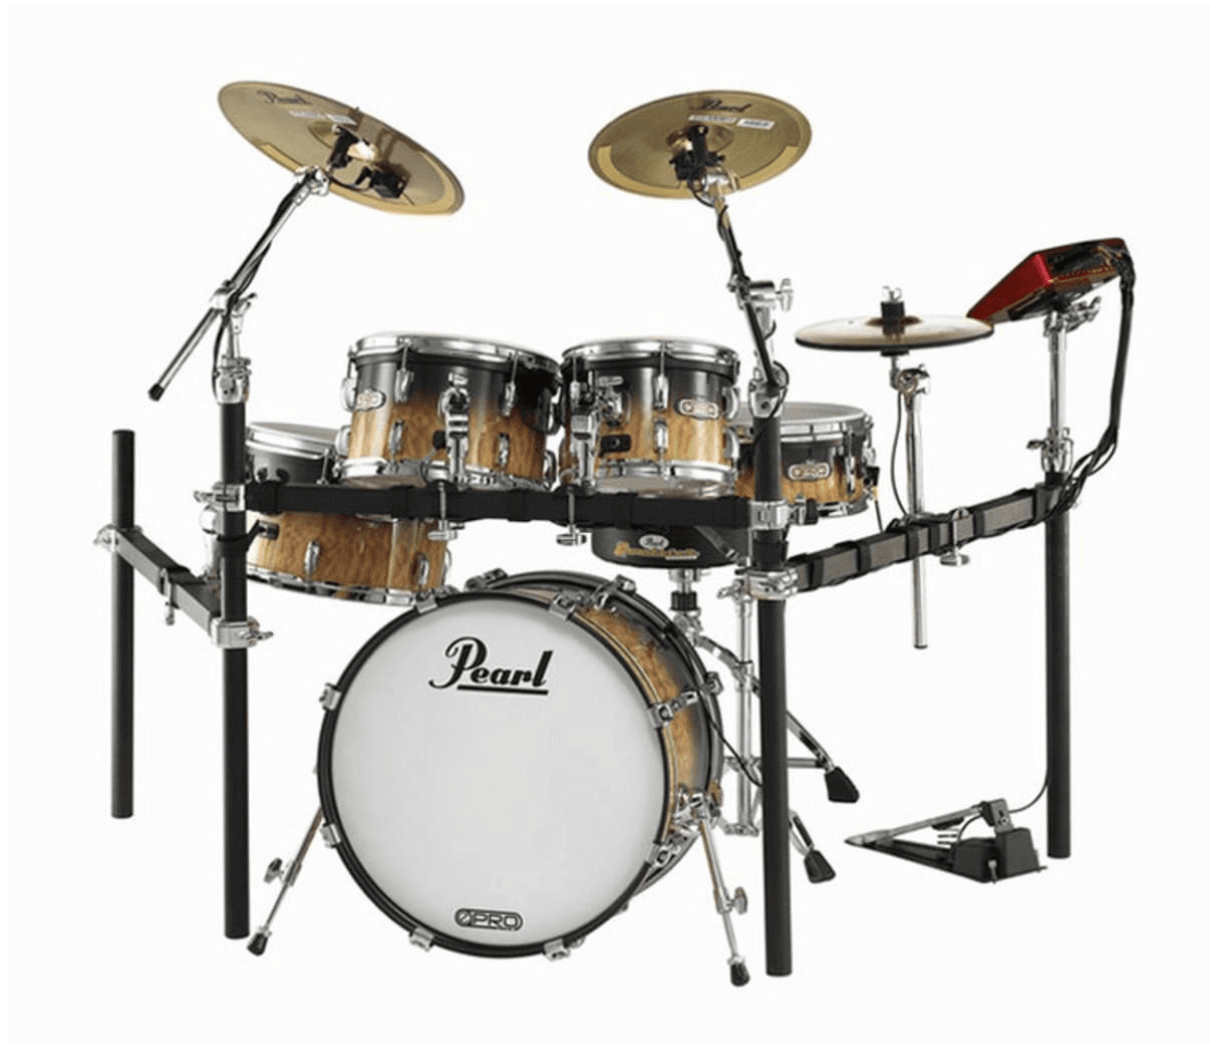 The complete set up of the Pearl E Pro Review looks like an acoustic kit.